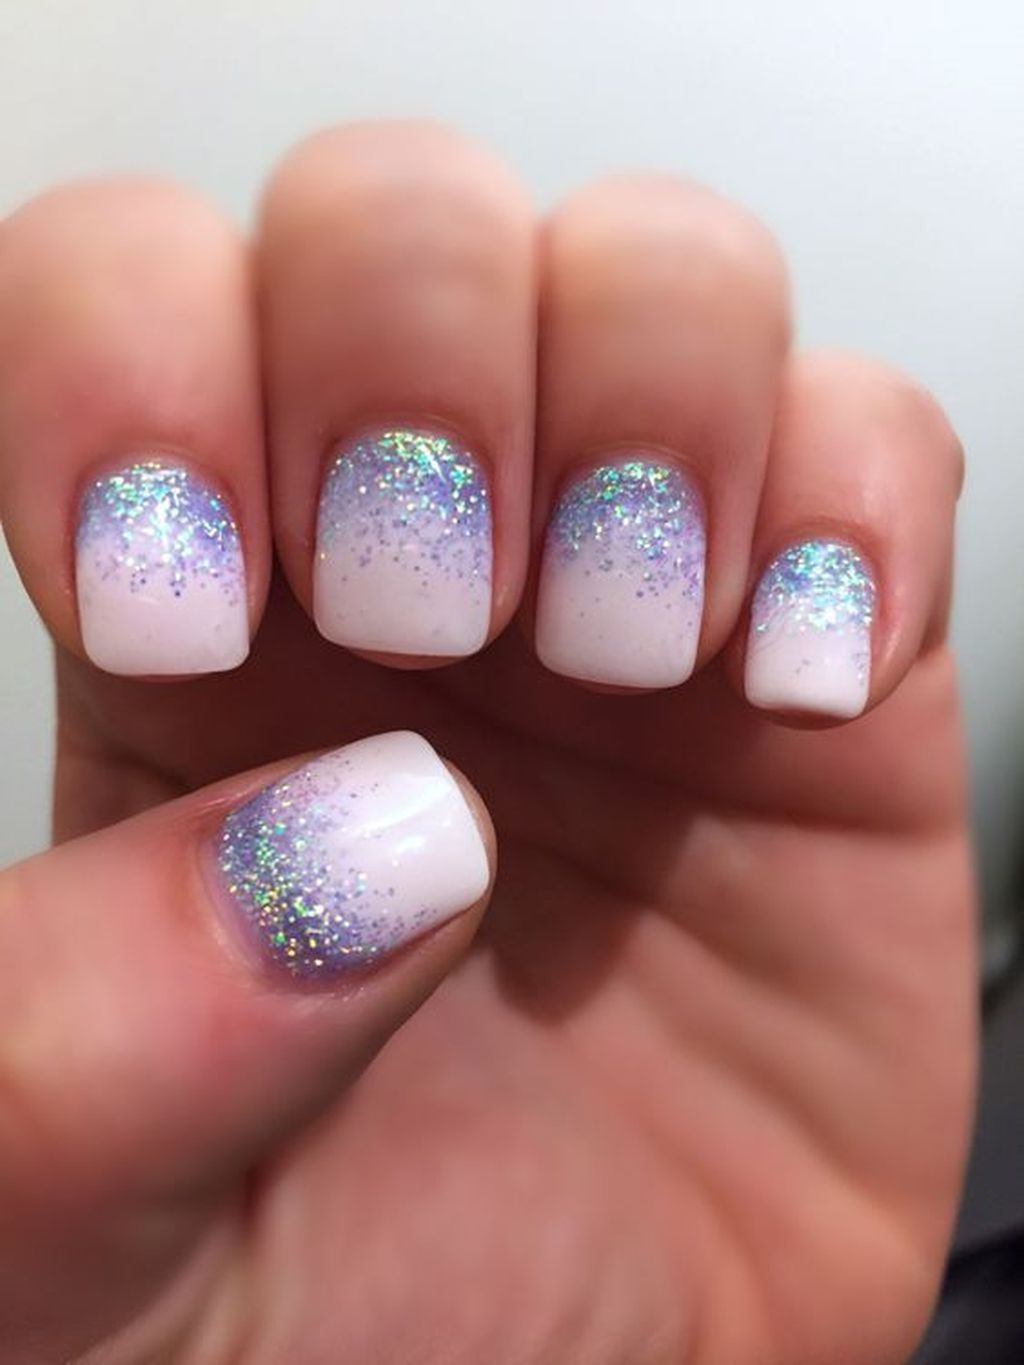 Simple Fall Nail Art Designs Ideas You Need To Try  Nail art